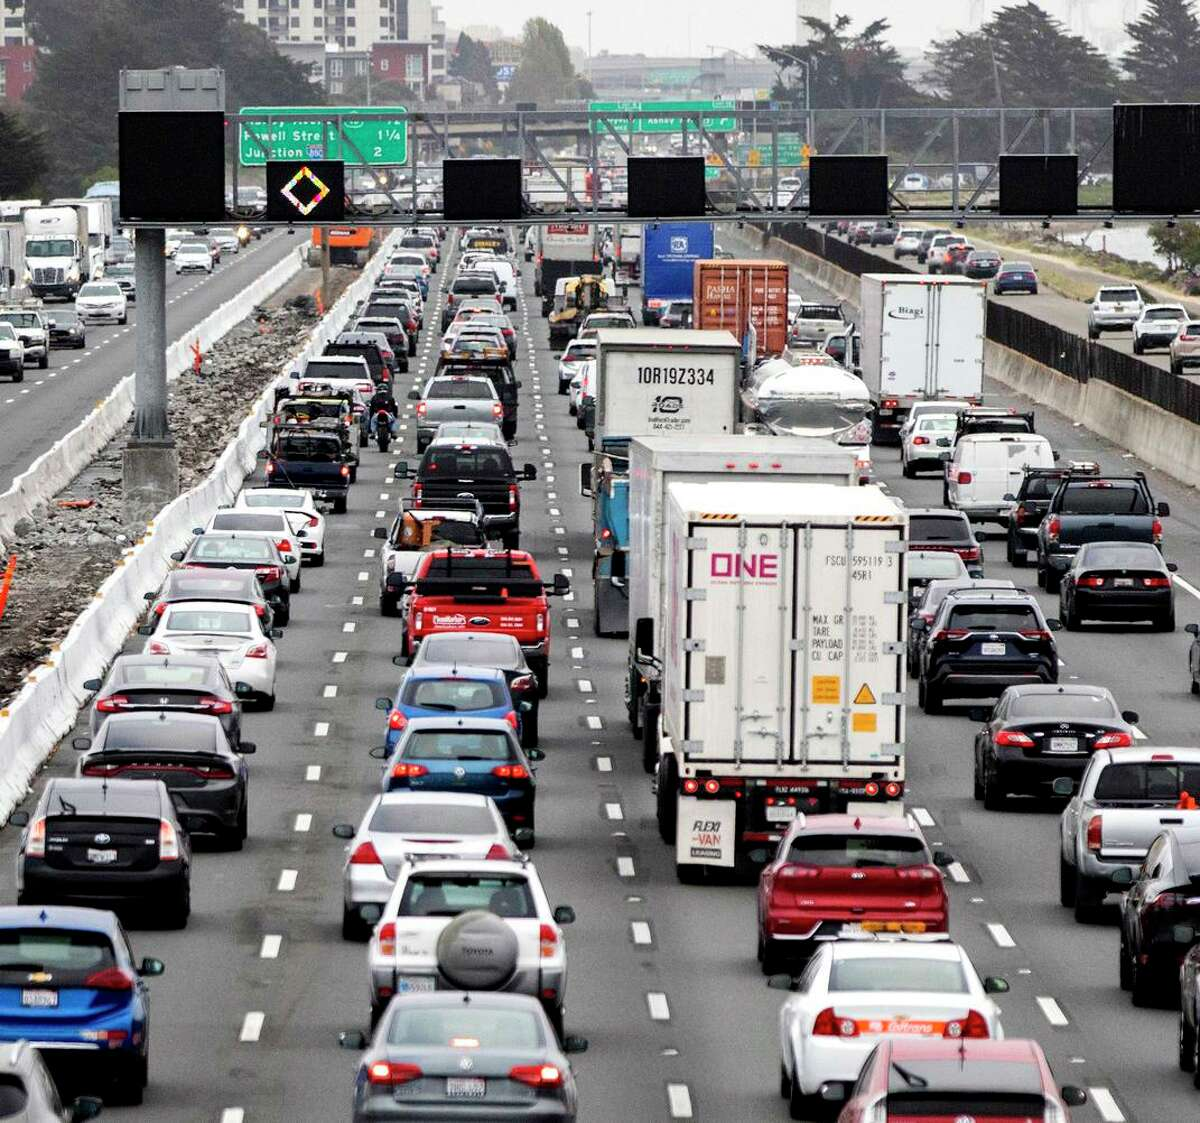 Morning commuter traffic backs up on Interstate 80 westbound in Berkeley on April 6. A year after the pandemic caused traffic across the bay to drop by 50%, it's nearly back to pre-pandemic normal.